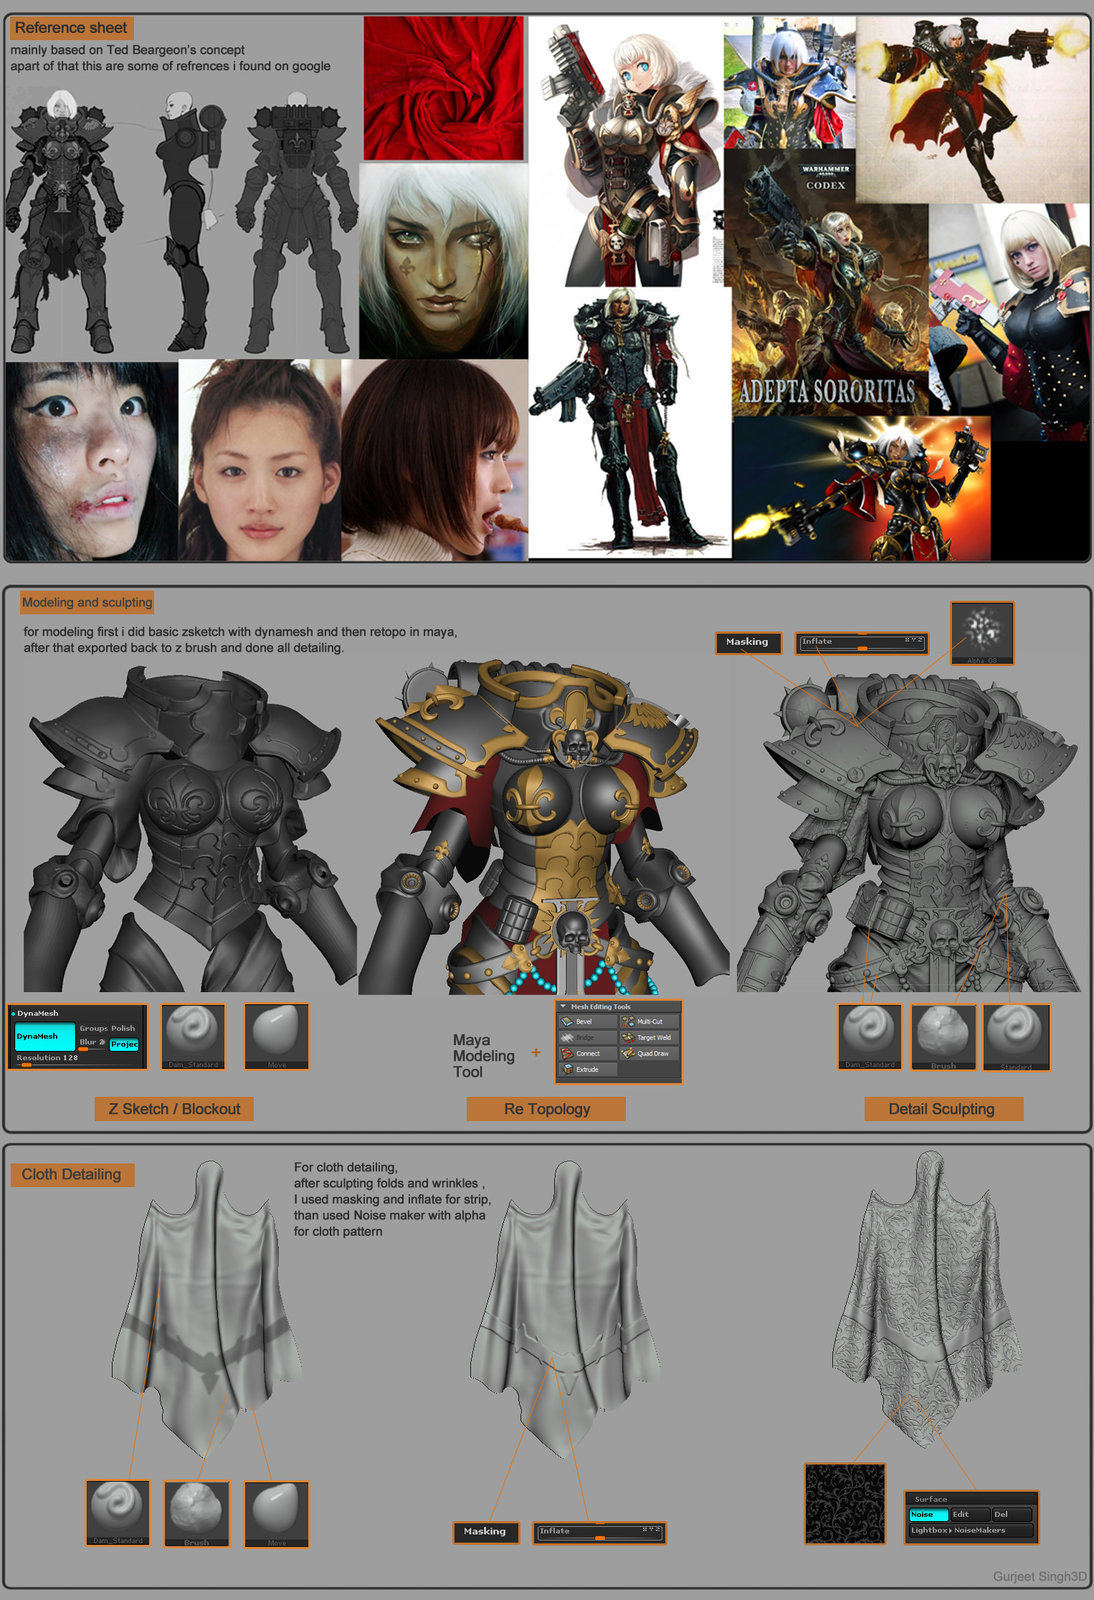 here is small breakdown of my work, I will be posting more break down images soon.